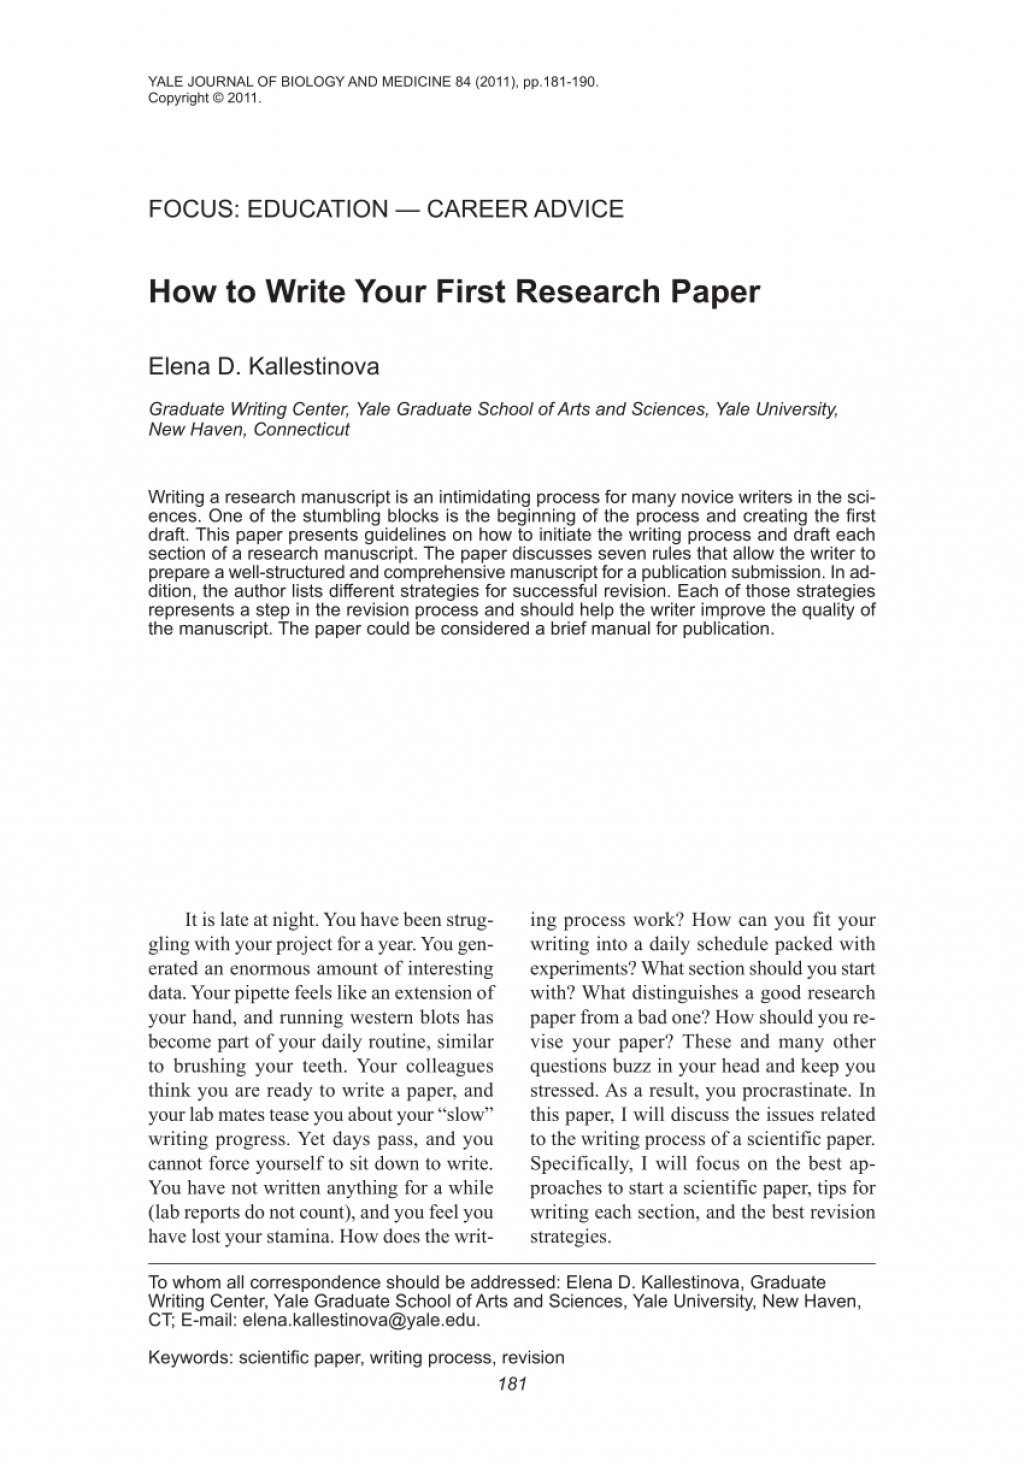 003 How To Write Research Paper Frightening A Thesis Driven Proposal Apa Large